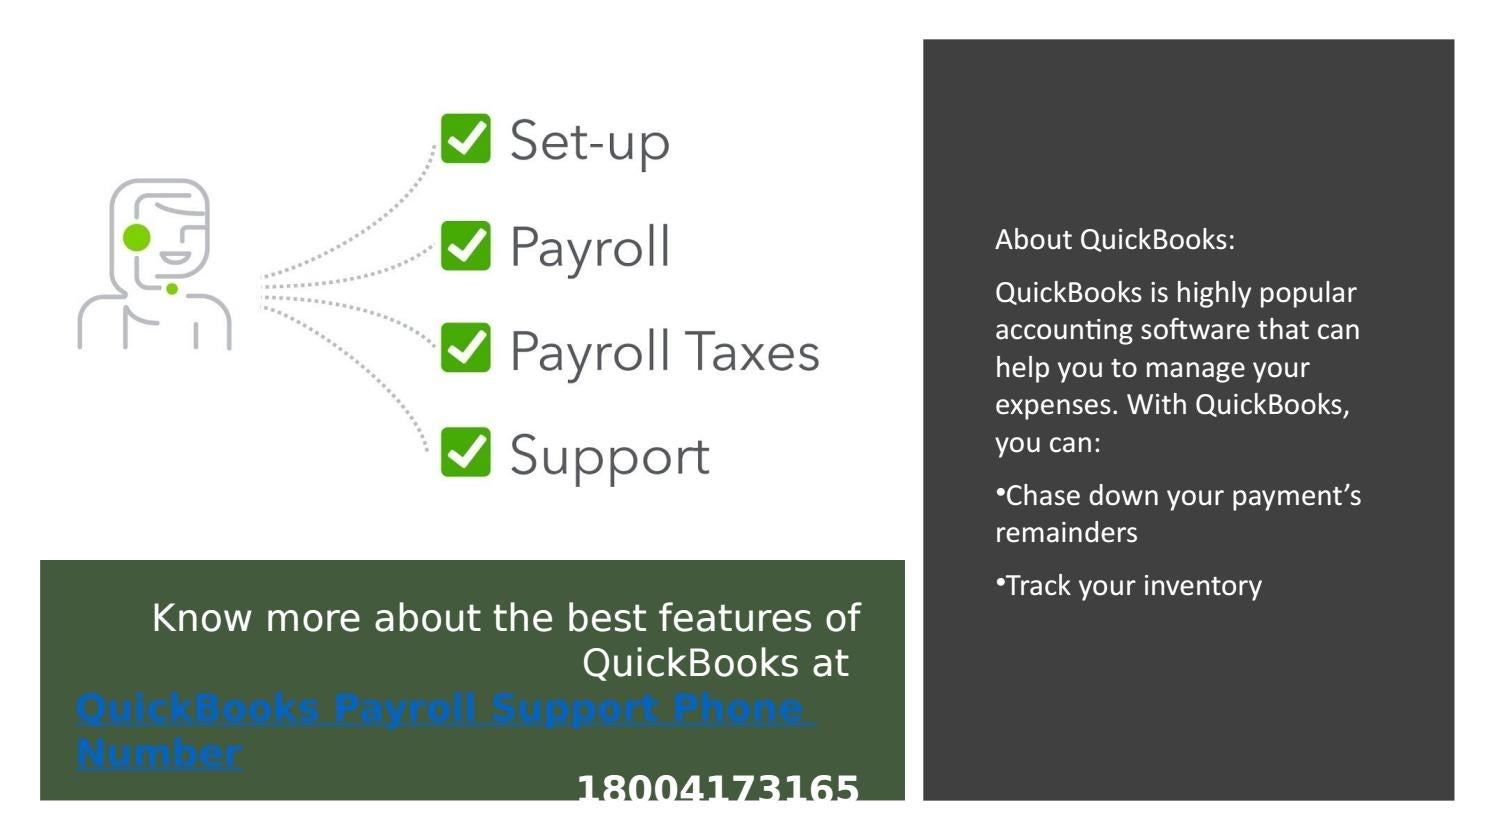 Dial QuickBooks Support Phone Number 18004173165 in case you